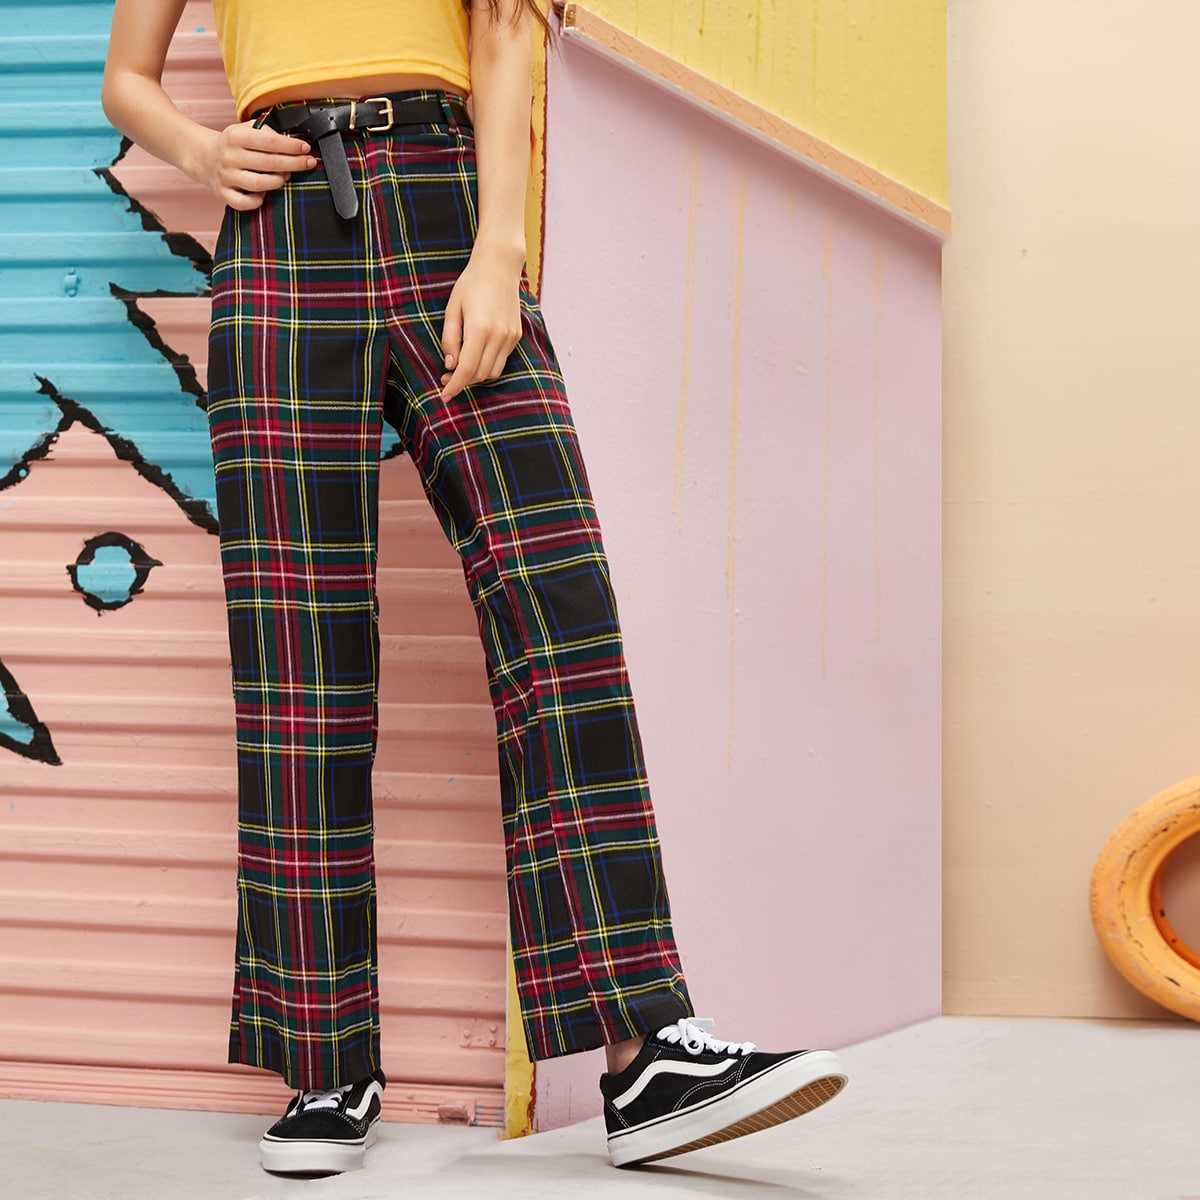 Plaid Wide Leg Pants Without Belt in Multicolor by ROMWE on GOOFASH